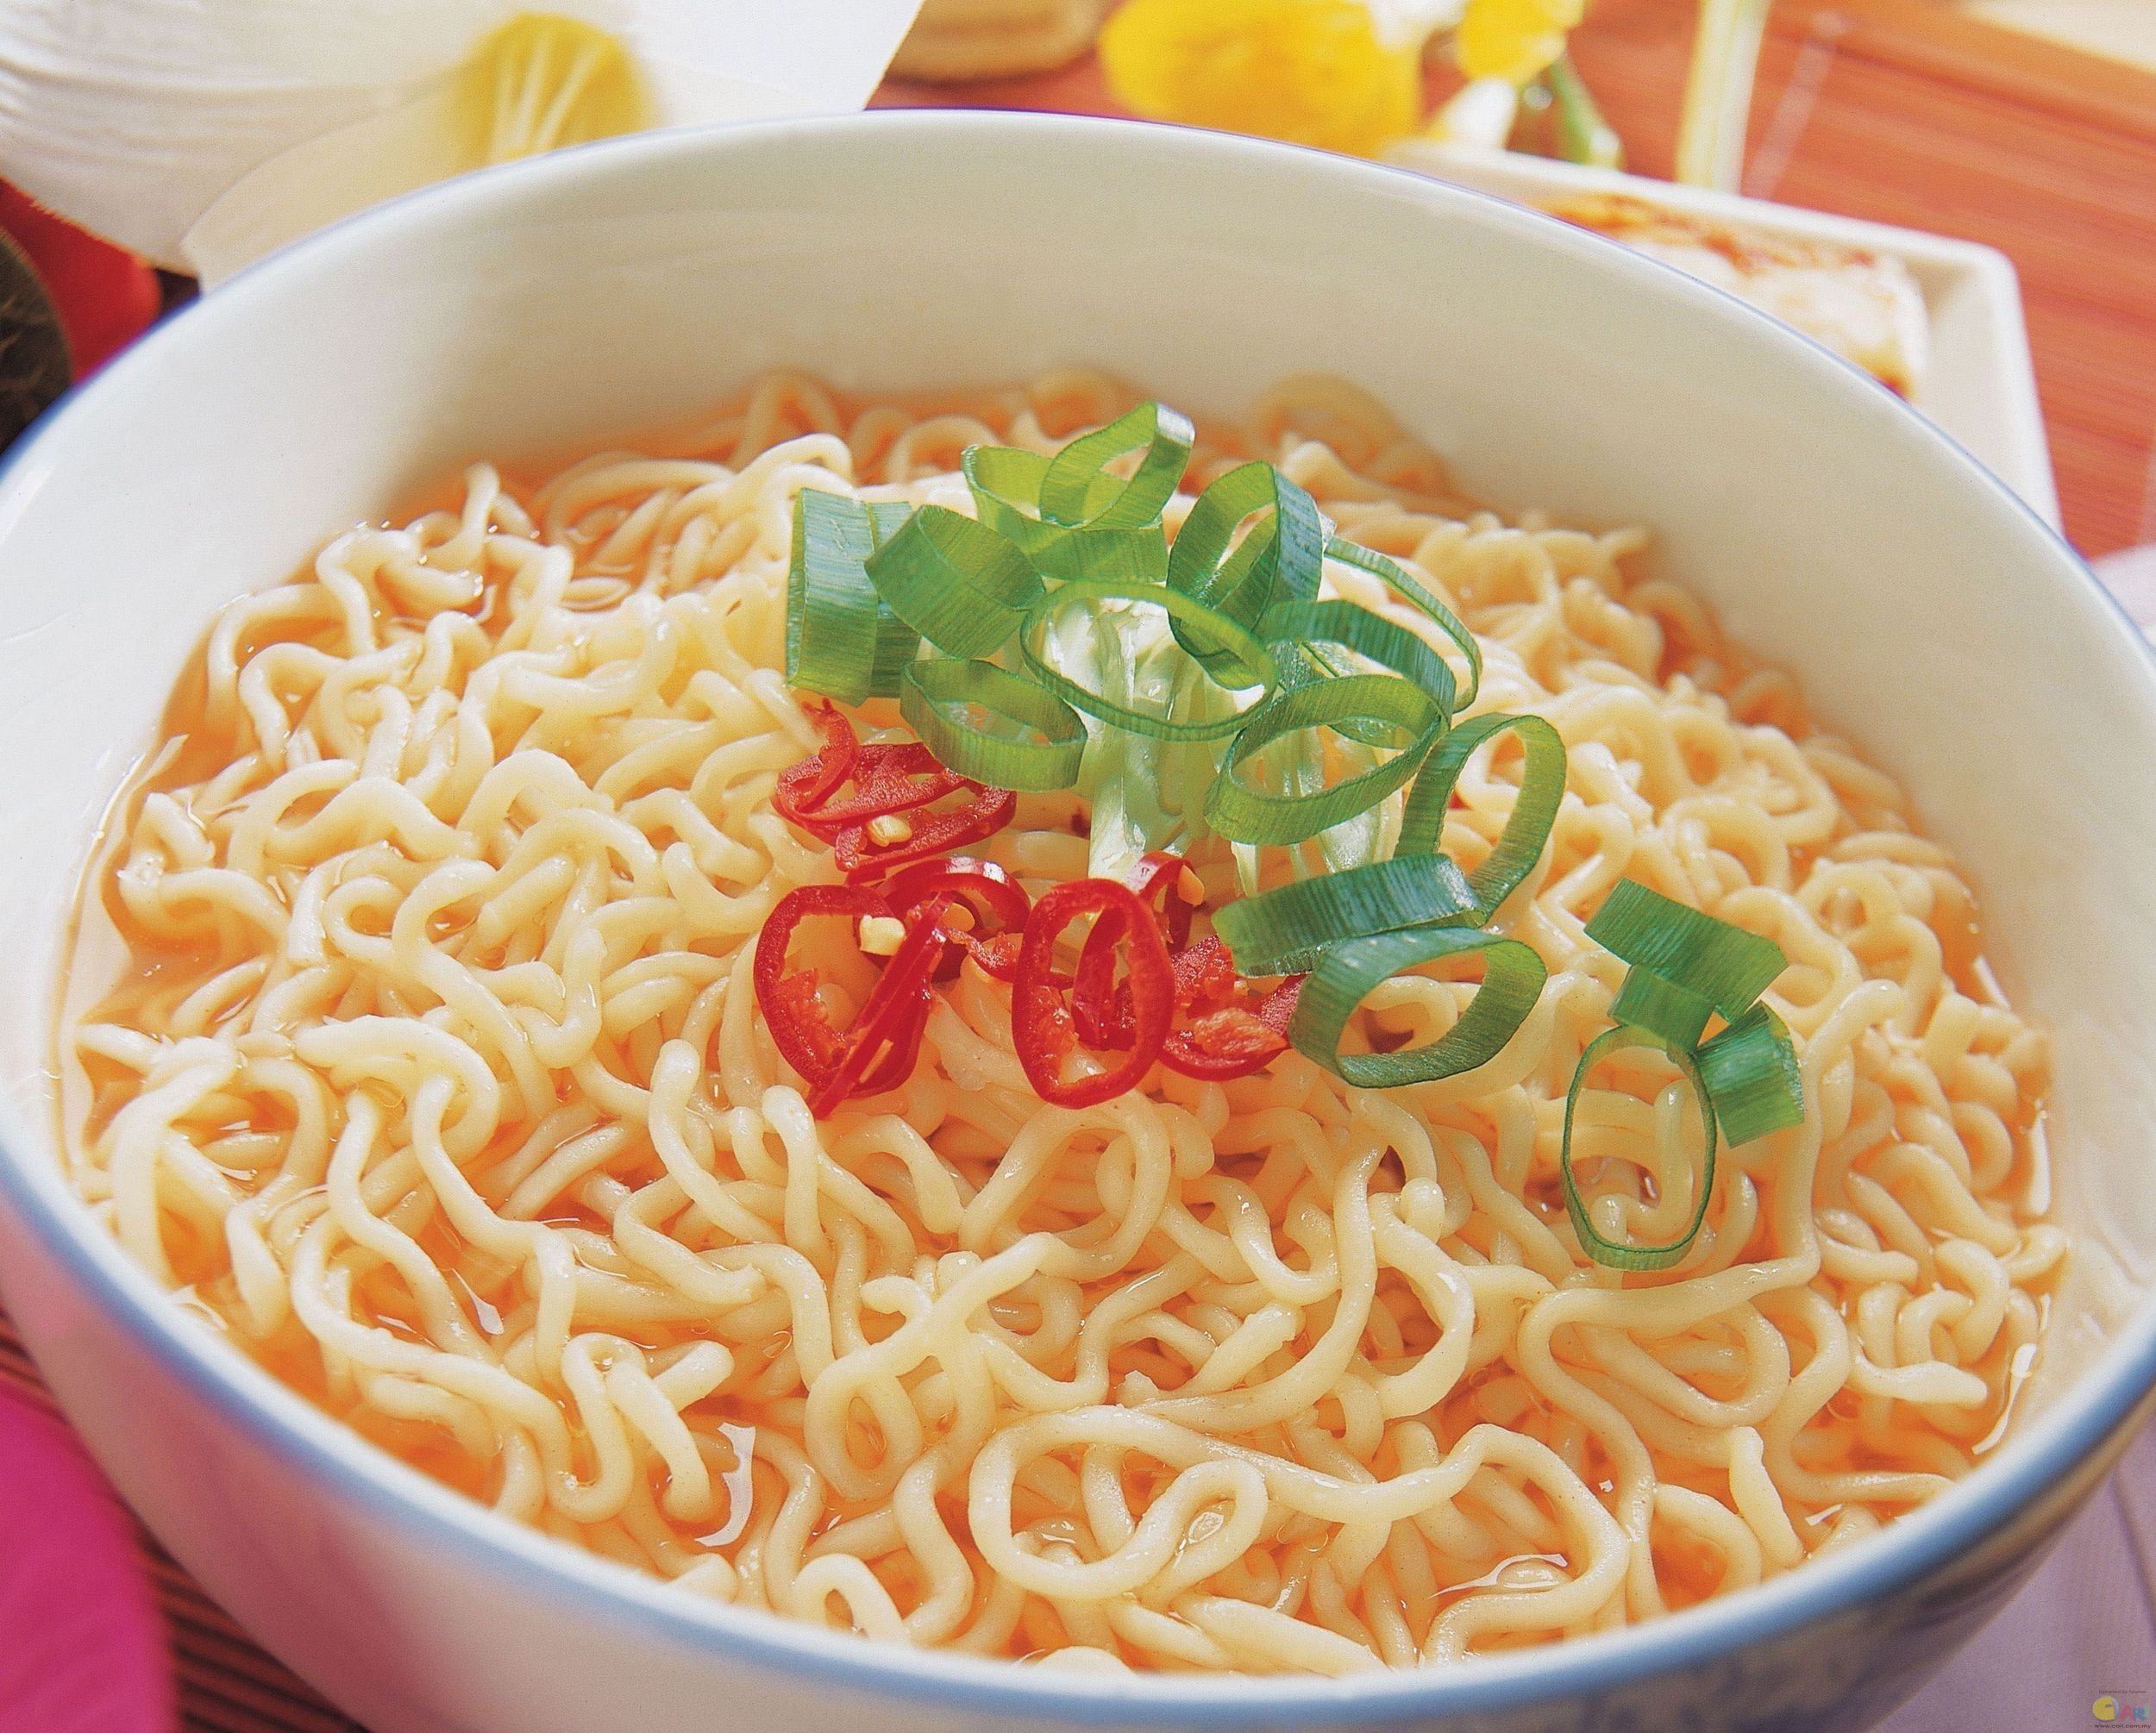 Best Foods during Rainy Days Noodles